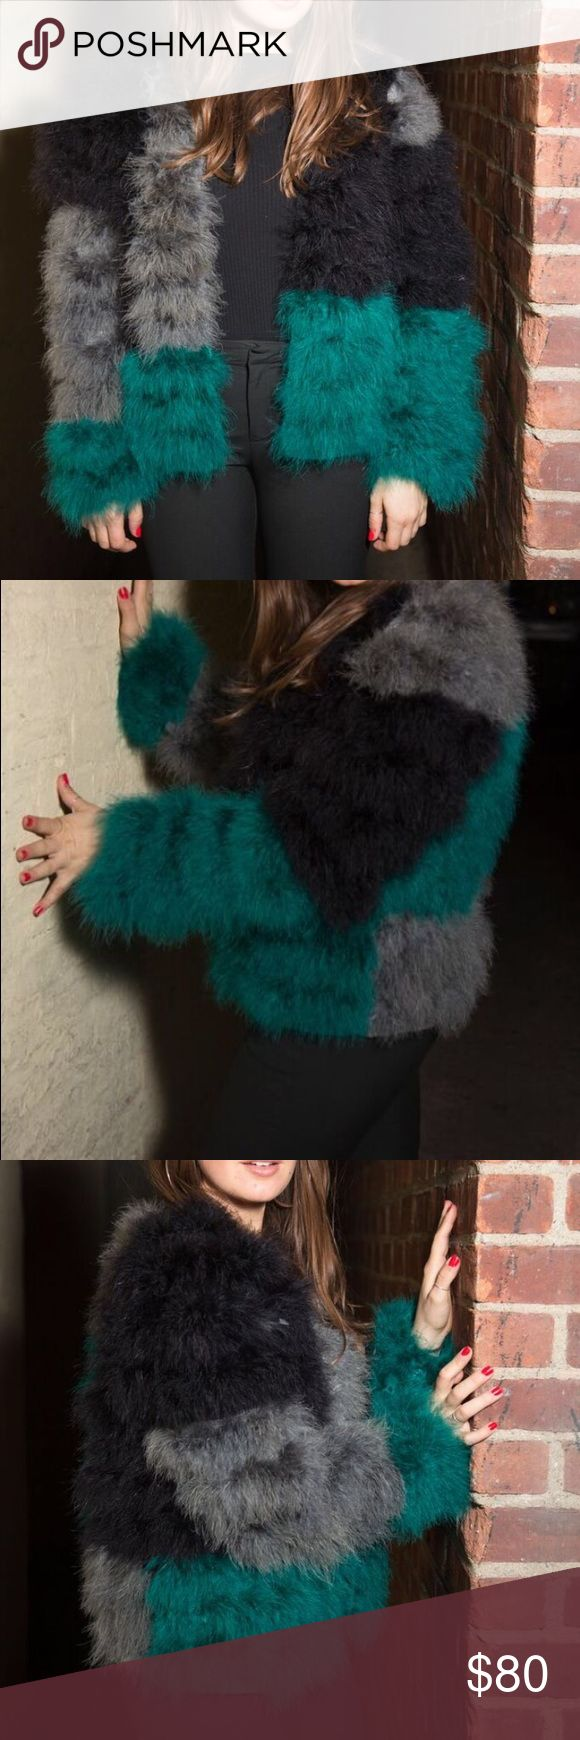 Fluffy Feather Jacket Used once! Topshop Jackets & Coats